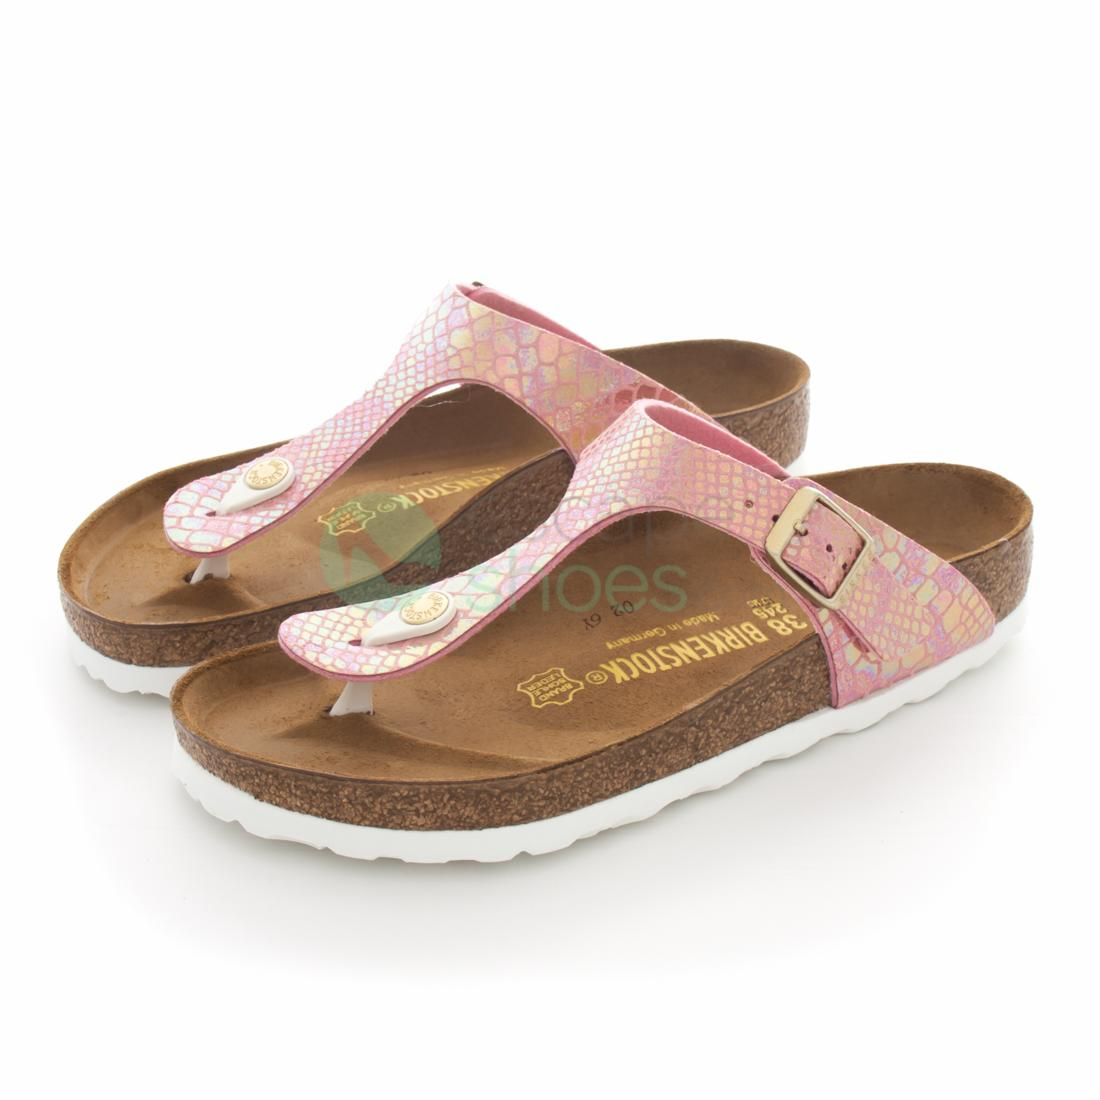 9316631bc3a Buy your Sandals BIRKENSTOCK 847421 Gizeh Shiny Snake Rose here ...